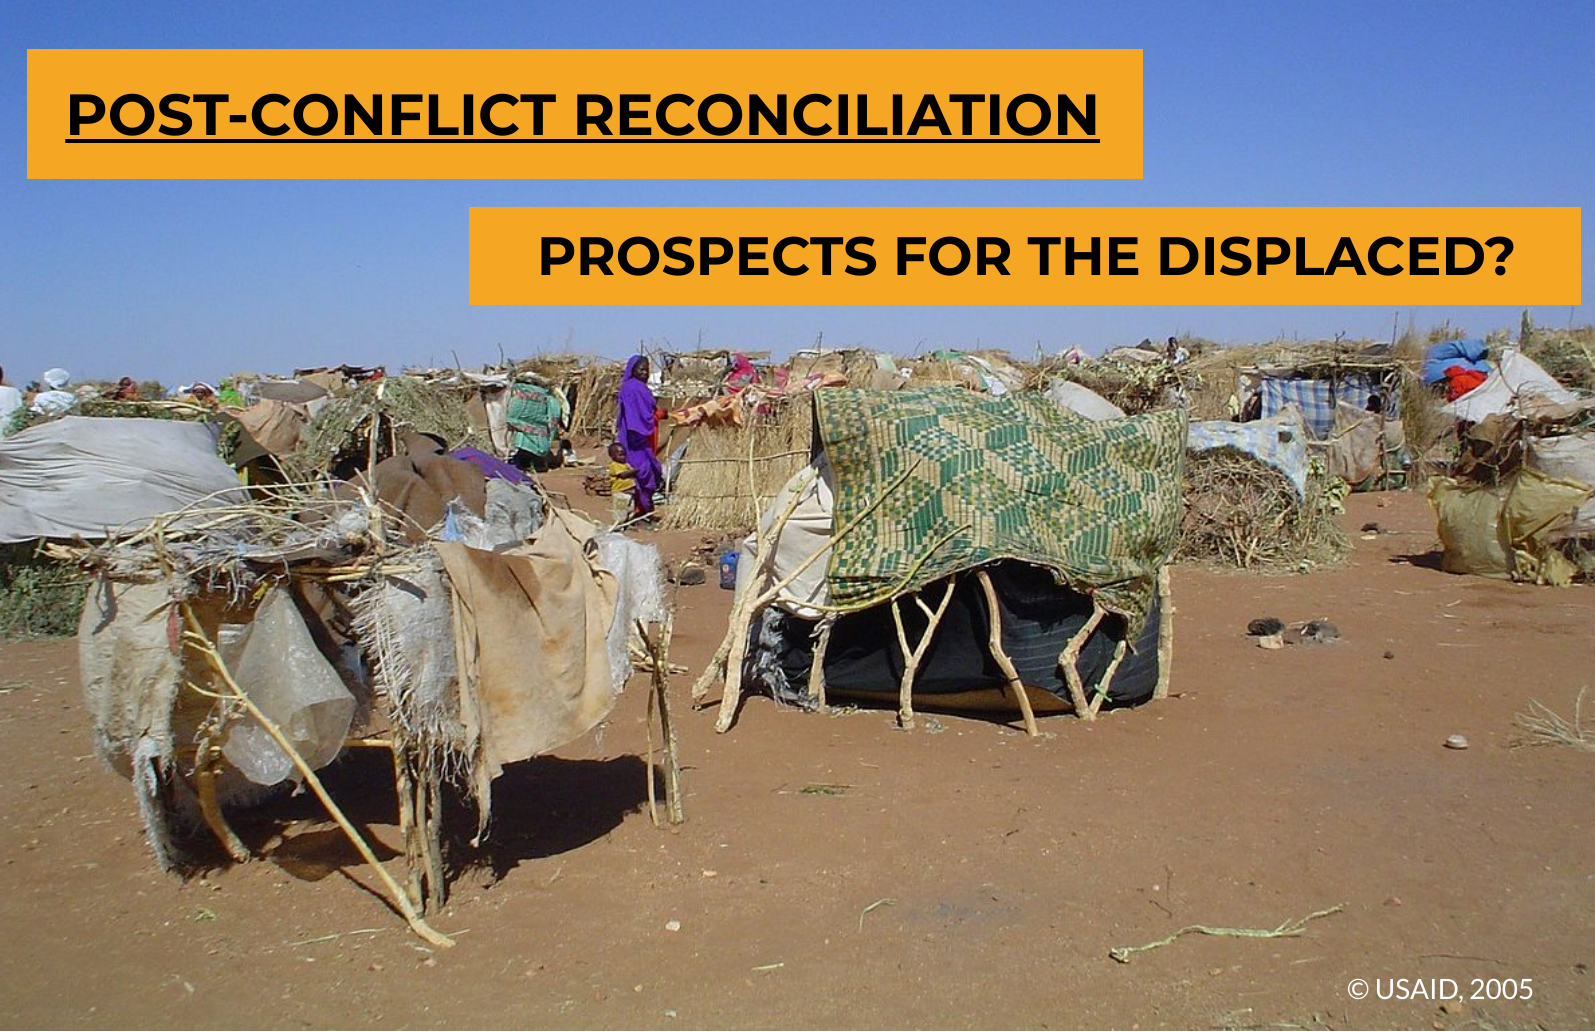 https://sihma.org.za/photos/shares/post-conflict-r_49707680 (1).png